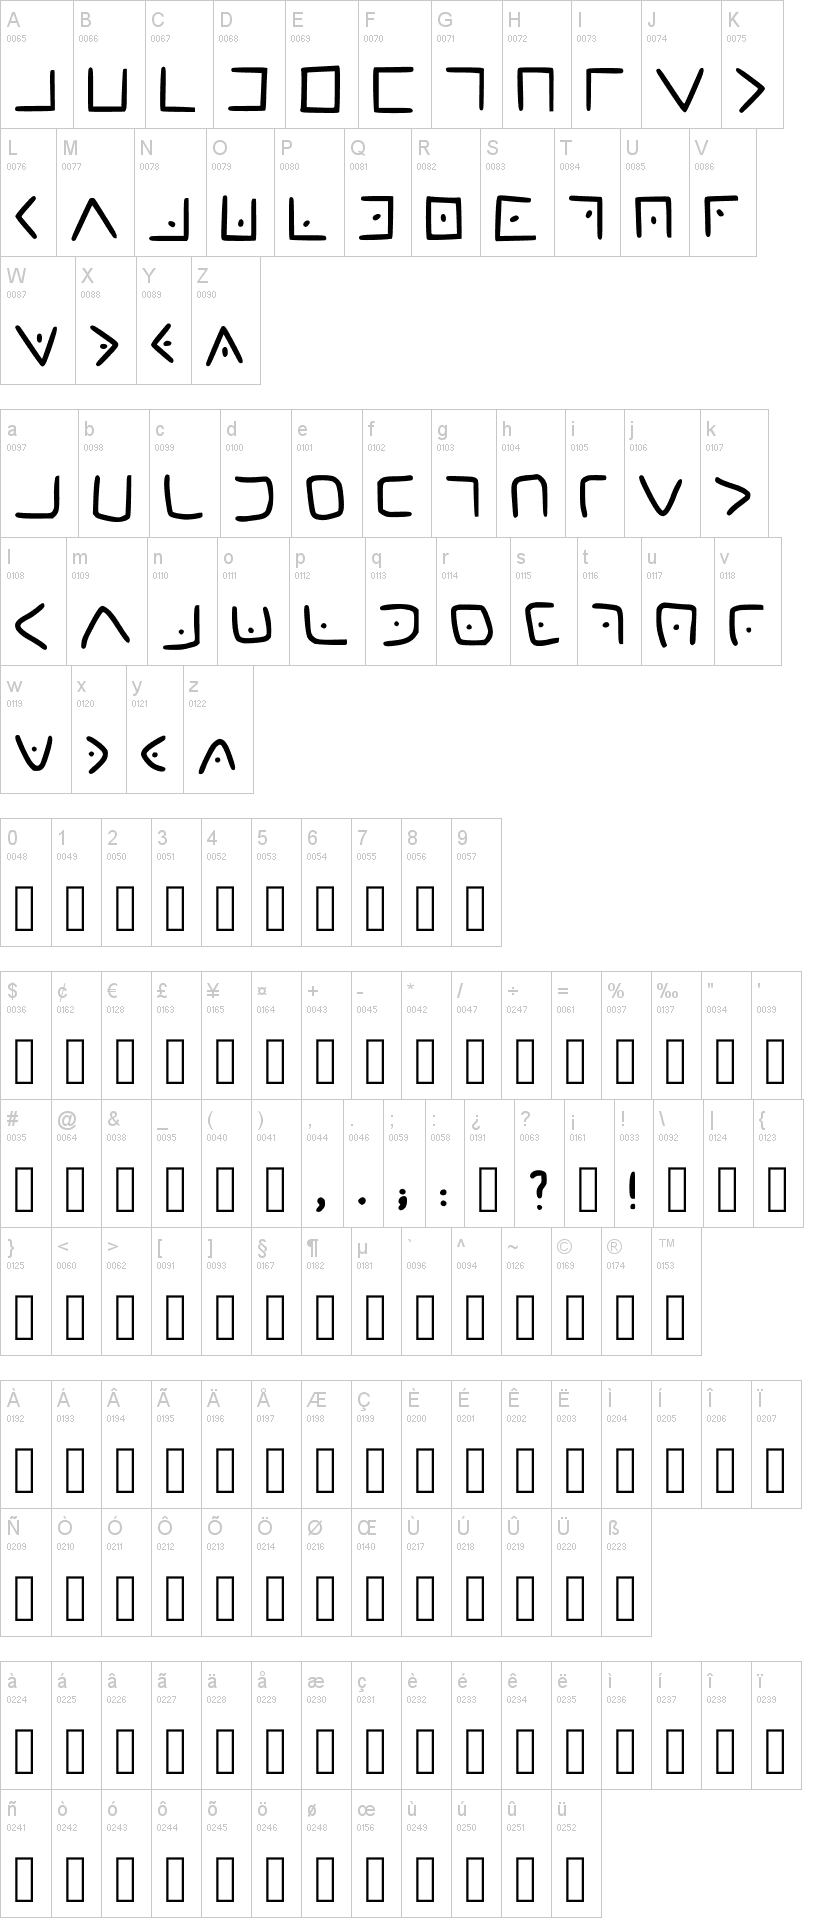 how to solve pigpen cipher